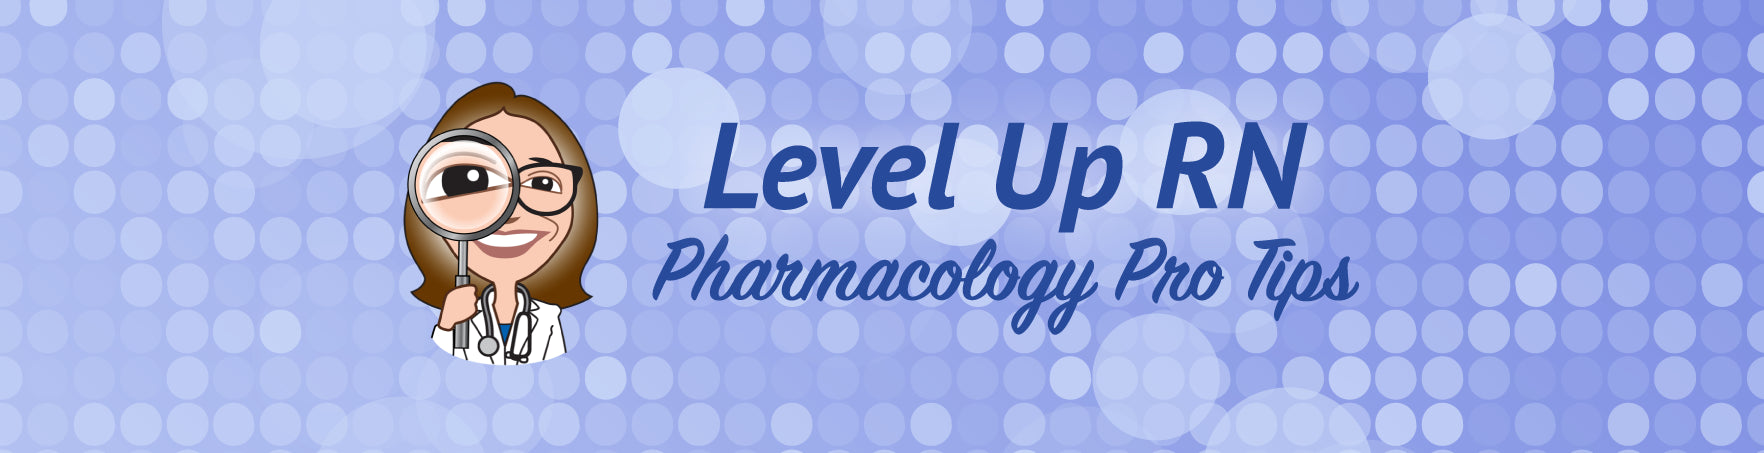 pharmacology cards the pro tips  leveluprn